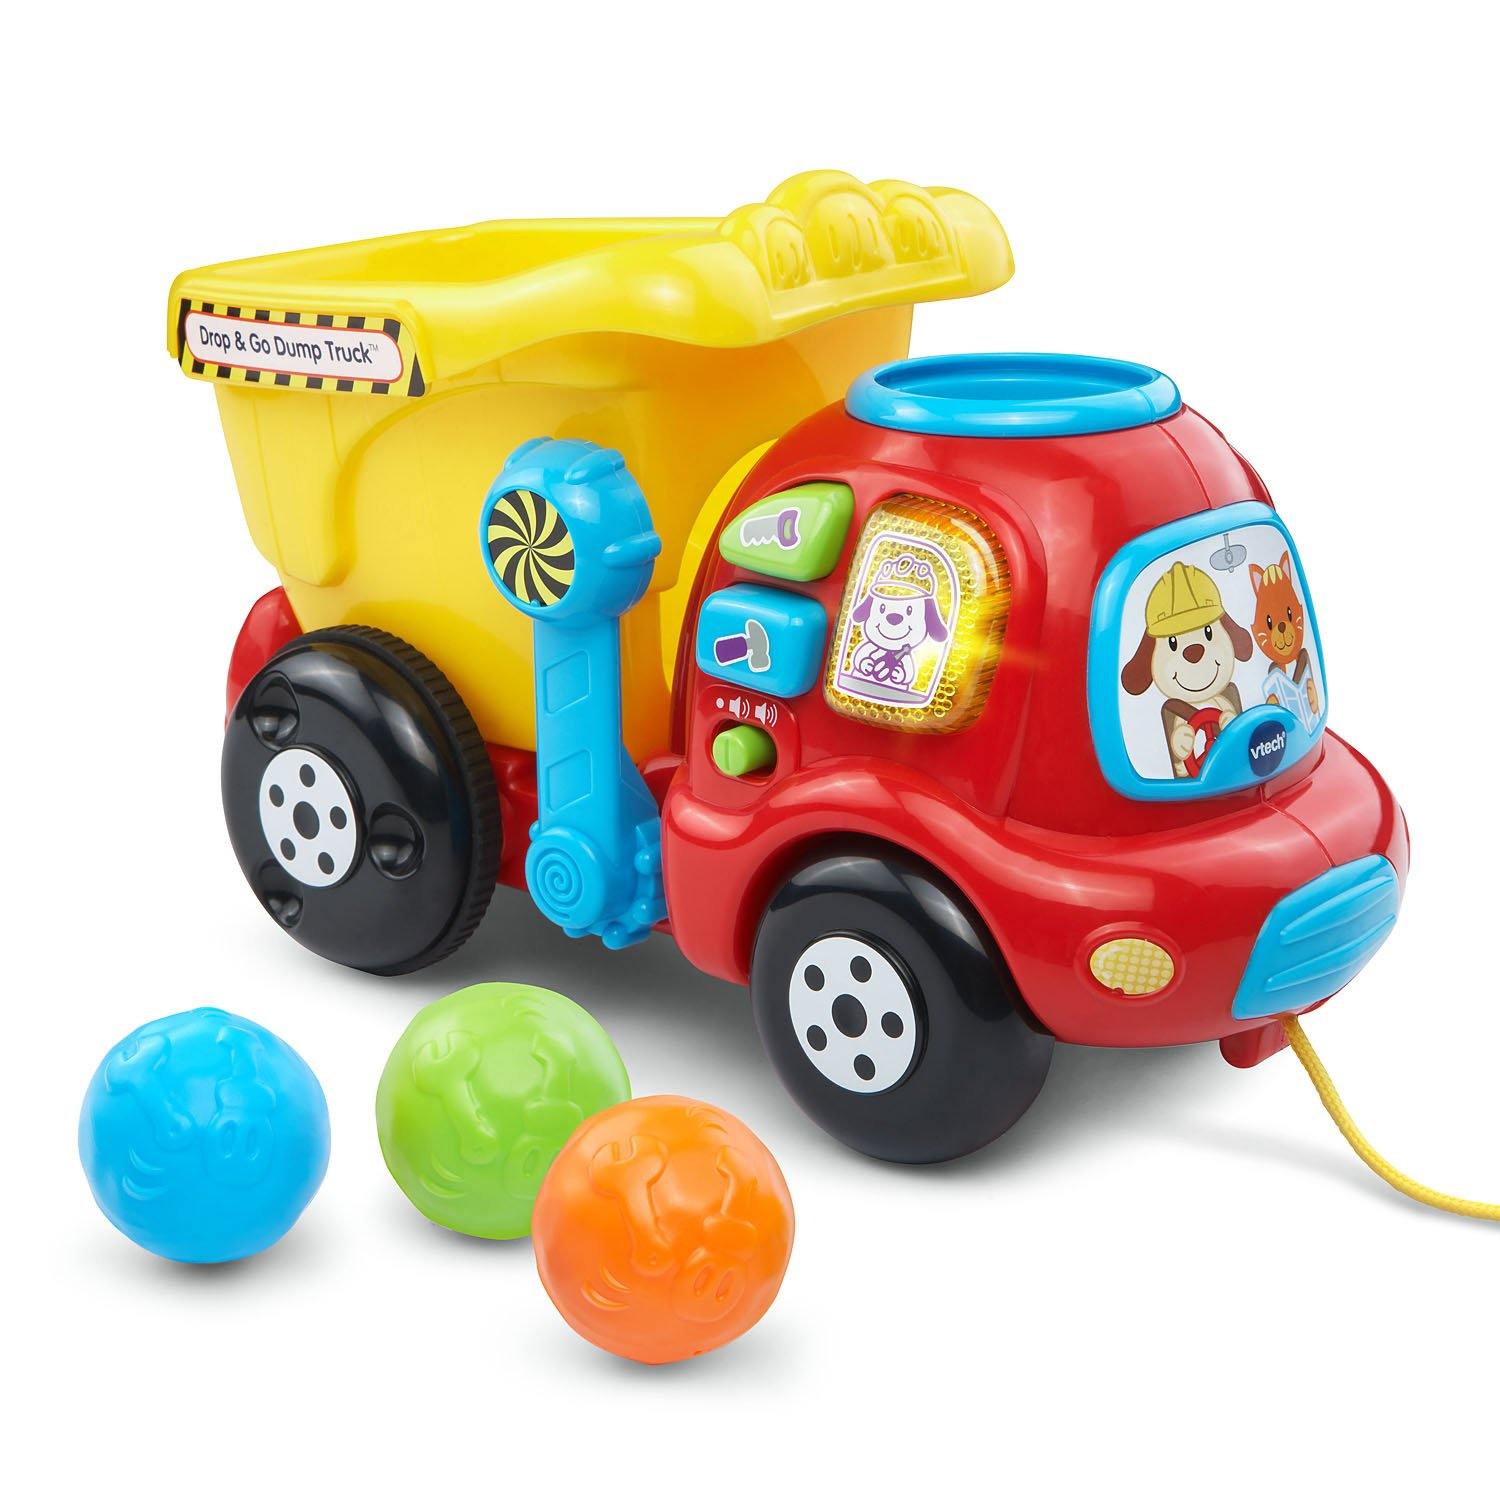 Amazon VTech Drop & Go Dump Truck Frustration Free Packaging